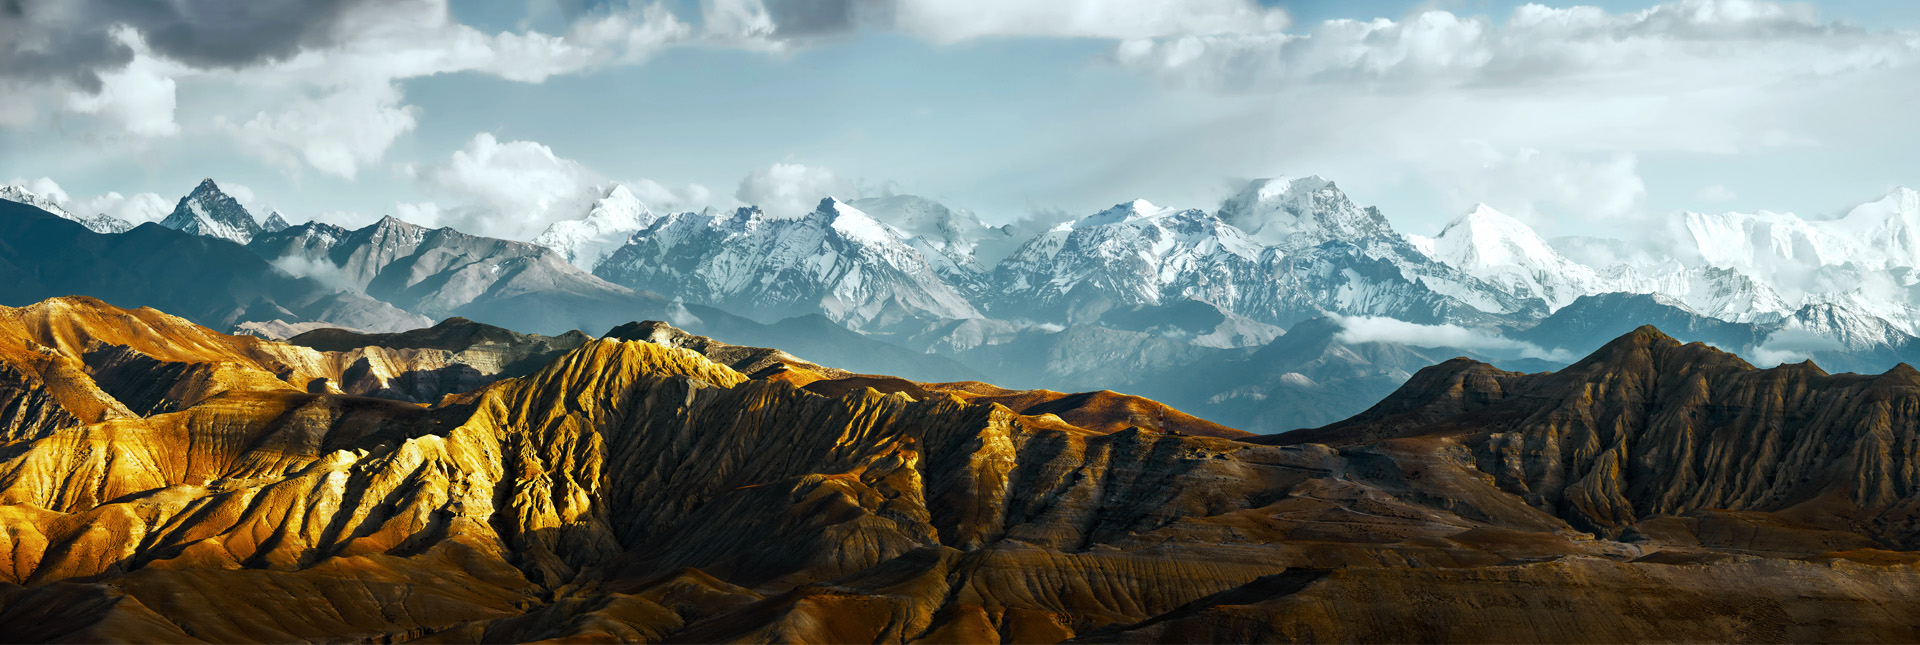 Majestic View during the Upper Mustang Trek